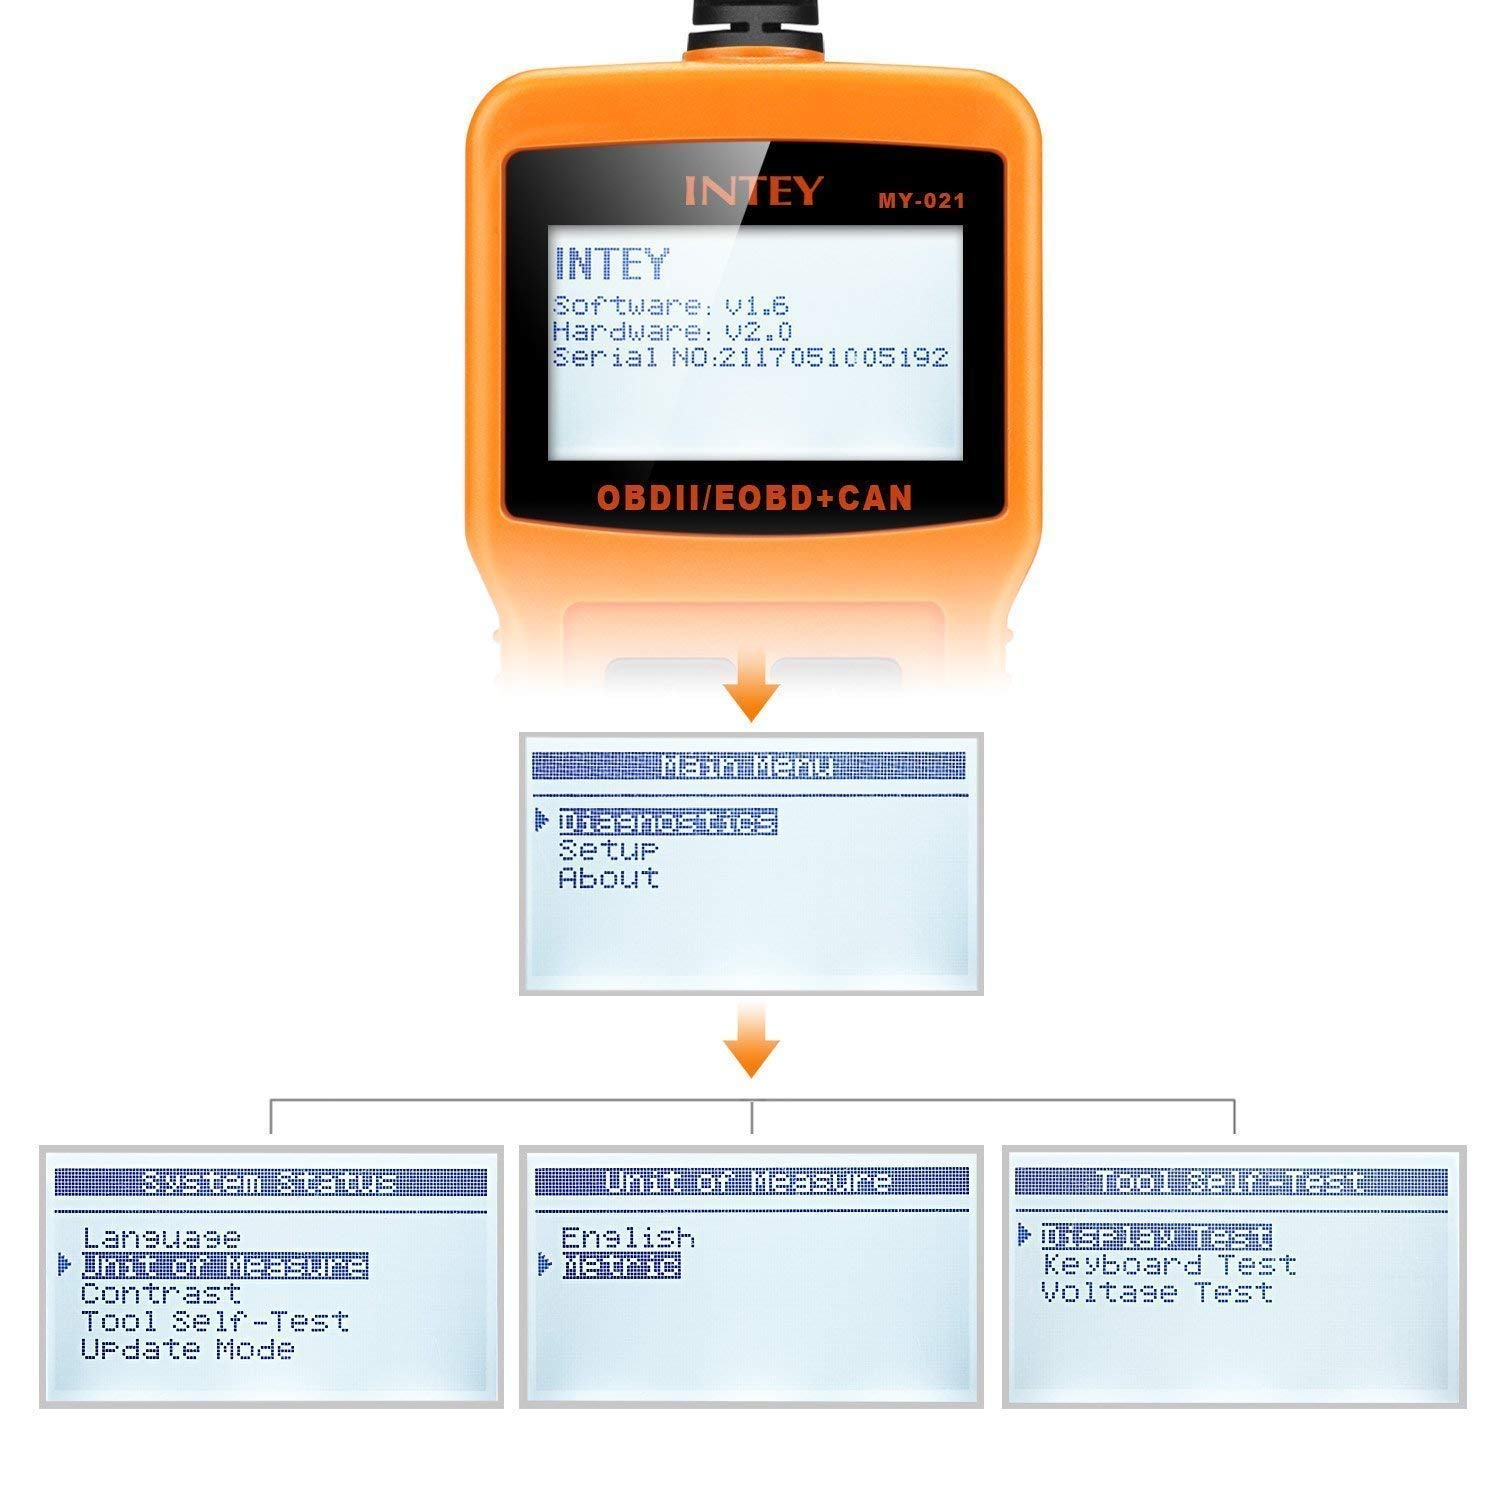 INTEY OBD2 Reader Car Vehicle Fault Code Reader Auto Diagnostic Scan Tool Read and Clear Error Codes for 2000 or Later US European and Asian OBDII Protocol Vehicle